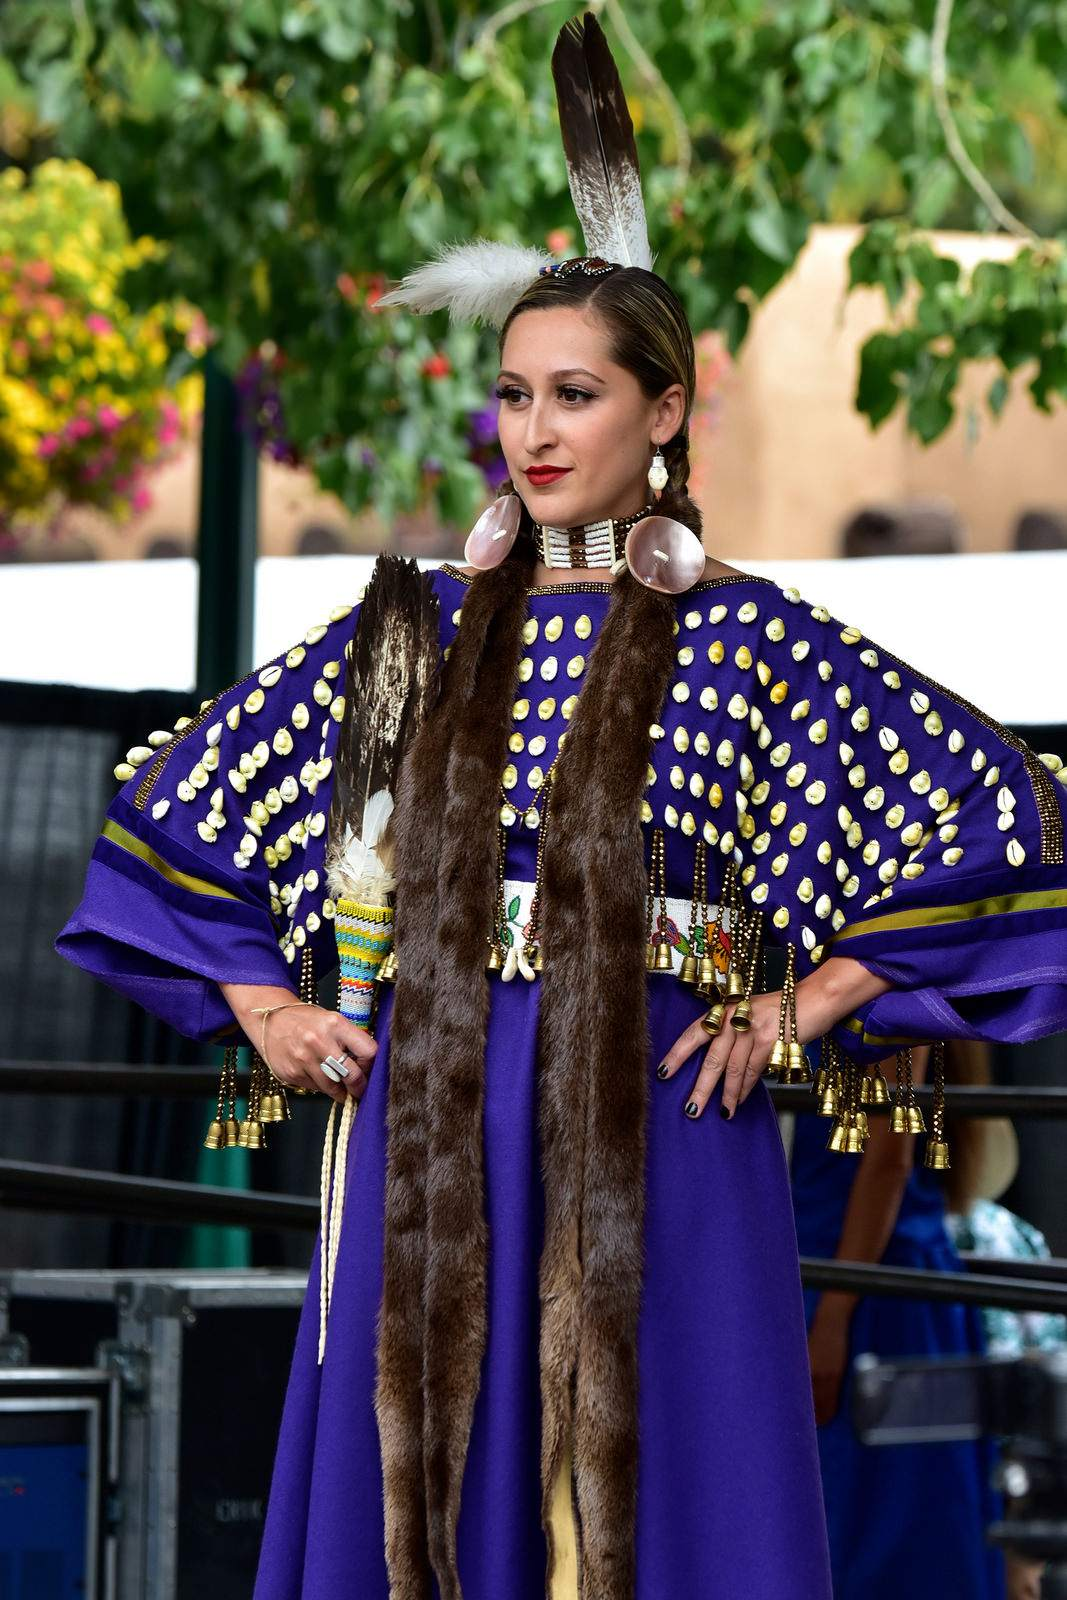 native american clothing10 Native American Clothing Contest at Santa Fe Indian Market